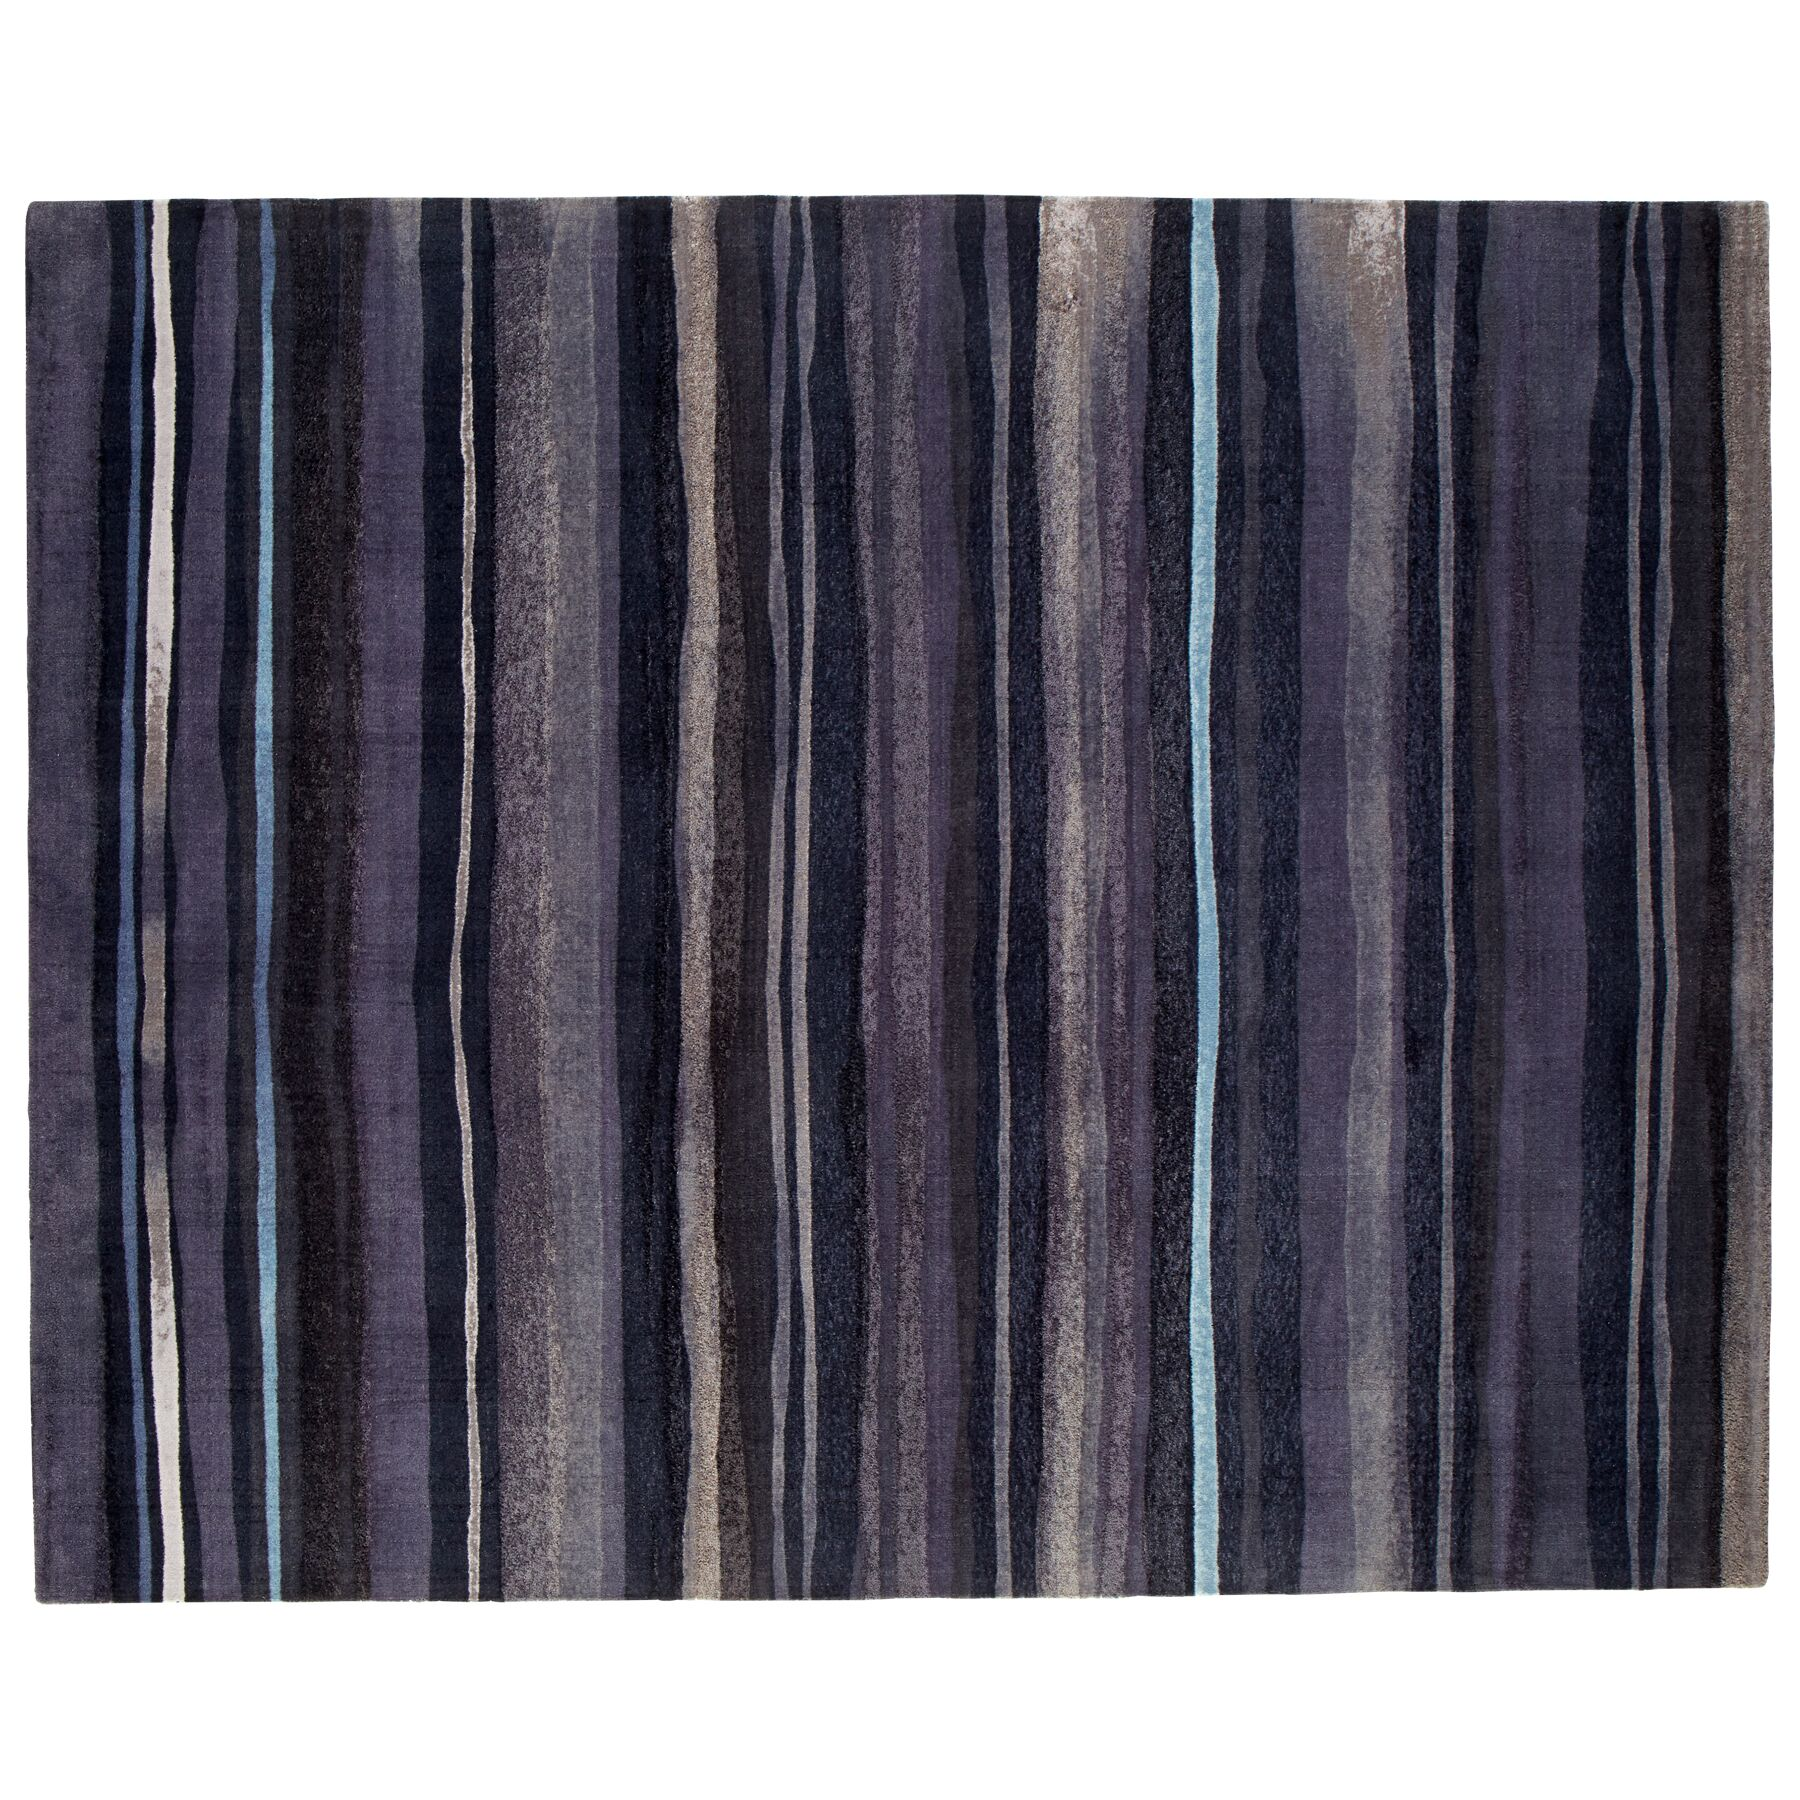 Arabian Nights Gray Area Rug Rug Size: Rectangle 8' x 10'